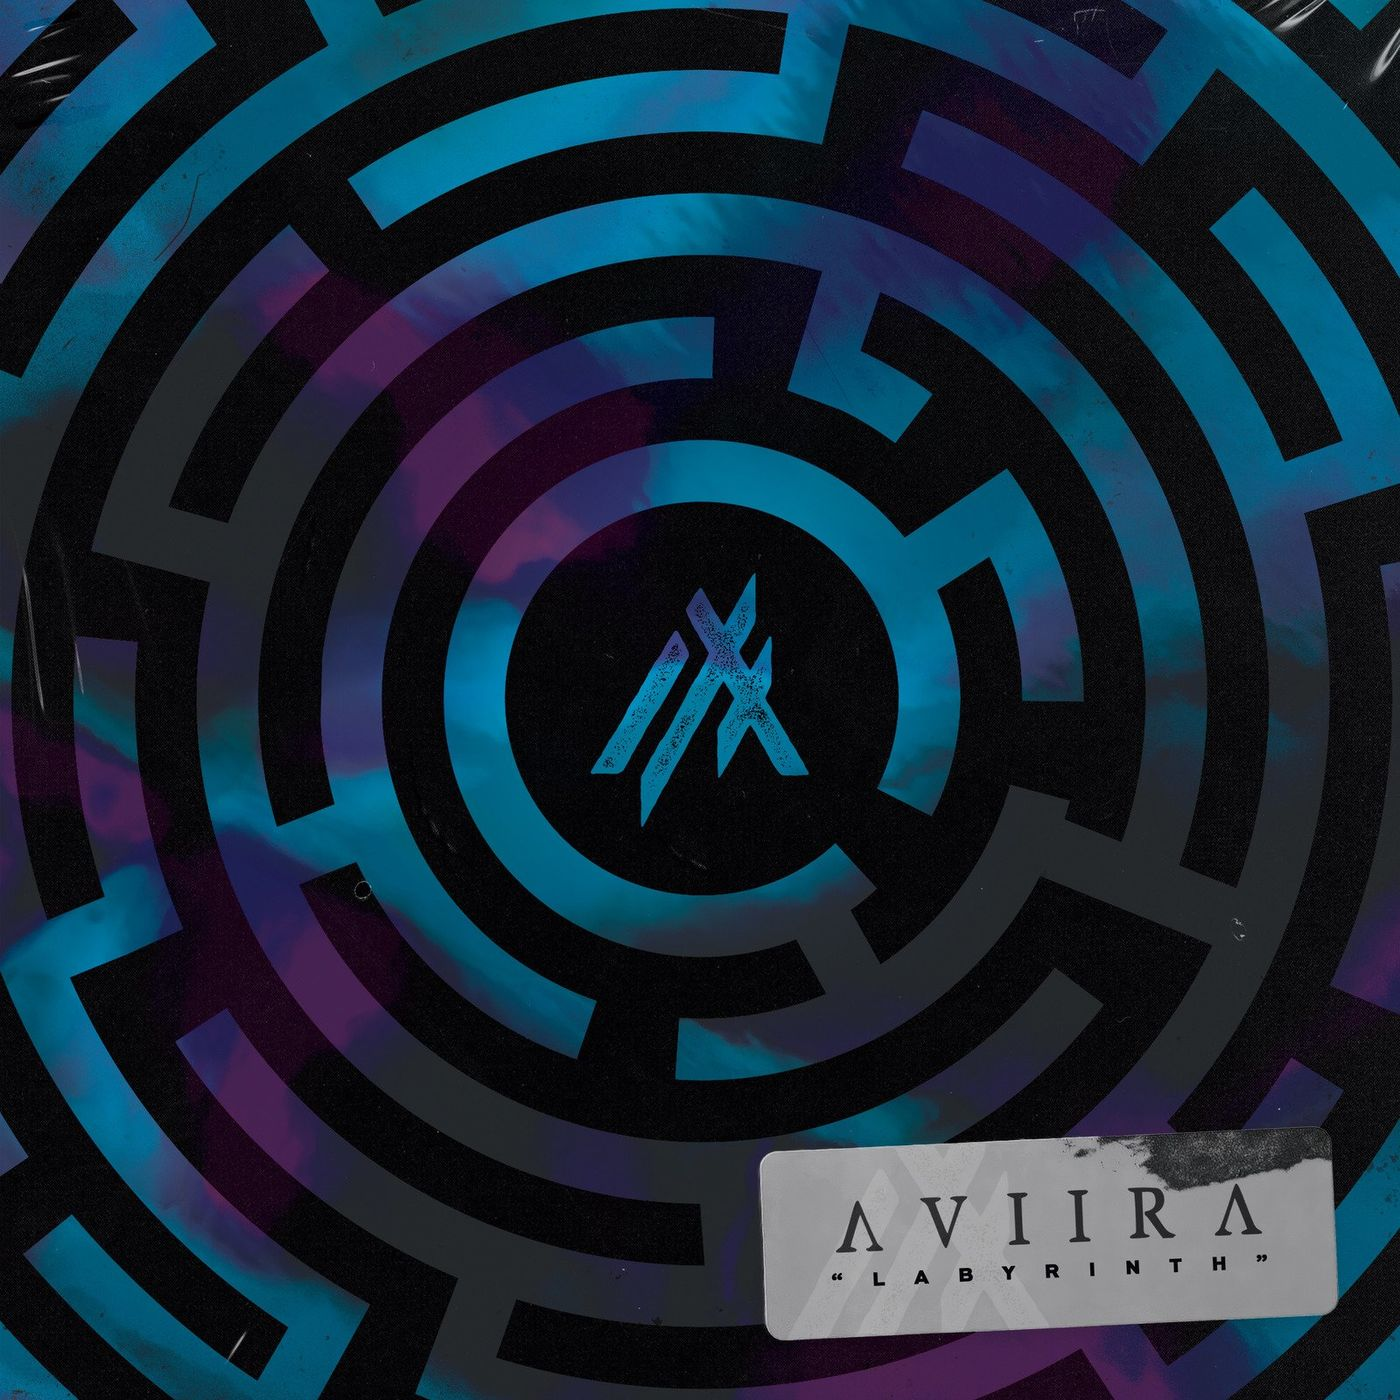 AVIIRA - Labyrinth [single] (2021)